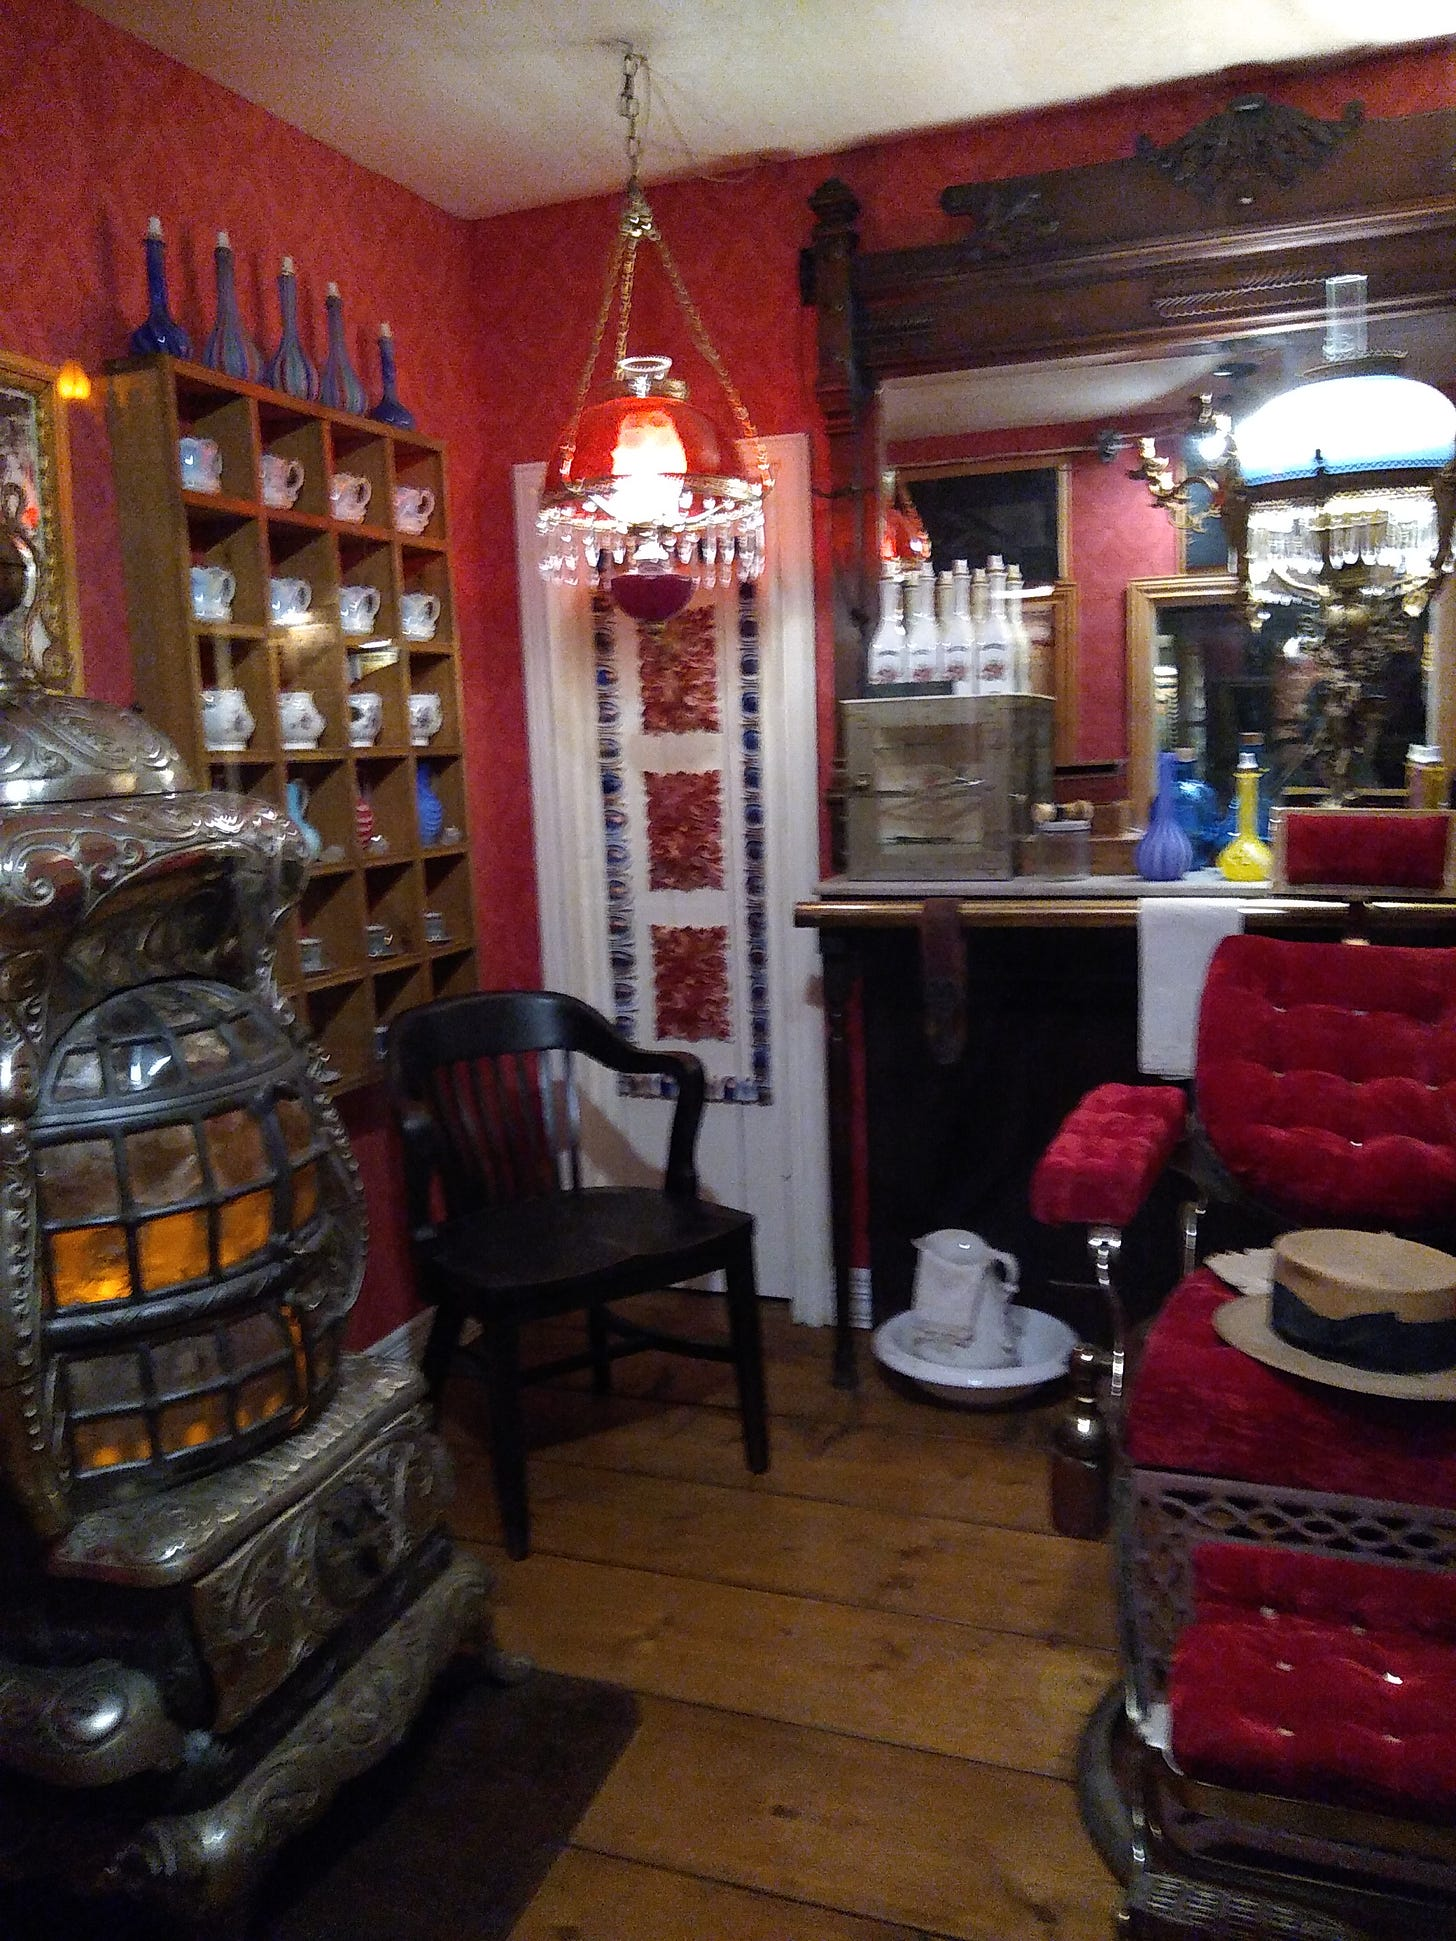 Victorian barbershop with chair, small bottles on shelves, and potbellied woodstove